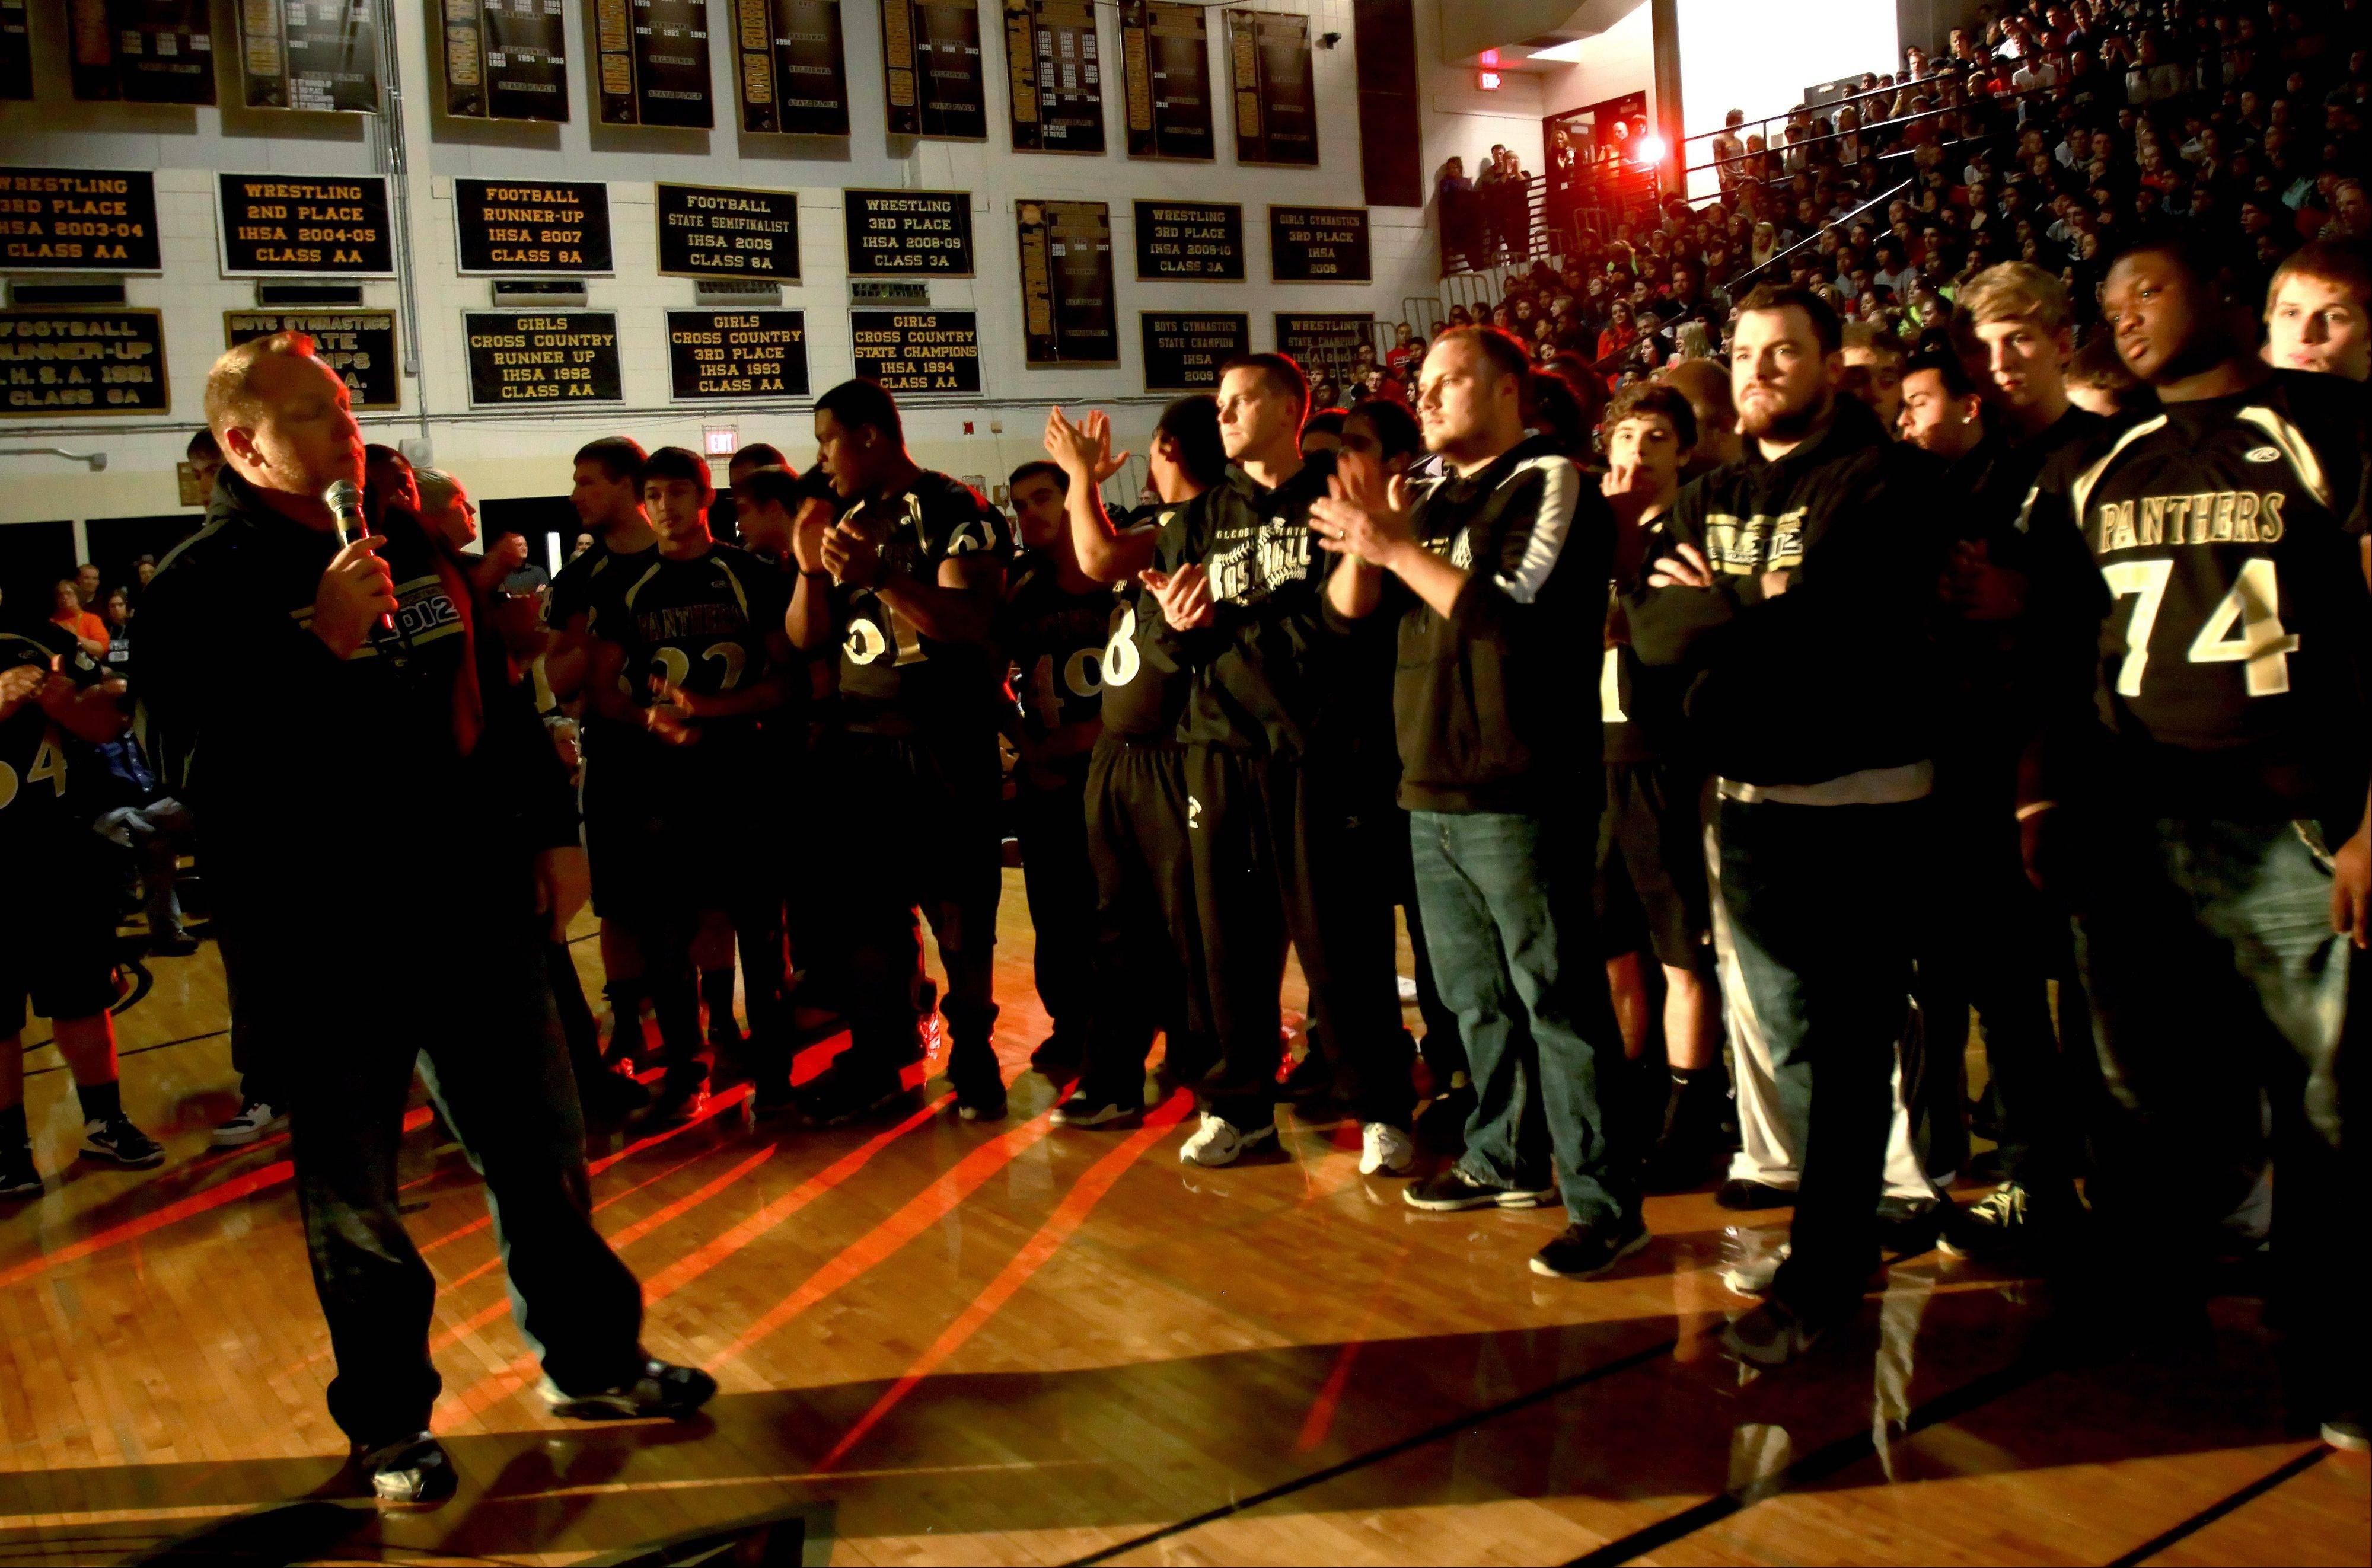 Glenbard North head football coach Ryan Wilkens, left, speaks at a pep rally Tuesday at the Carol Stream school. The team will play Mt. Carmel Saturday in Champaign for the Class 8A State Championship.